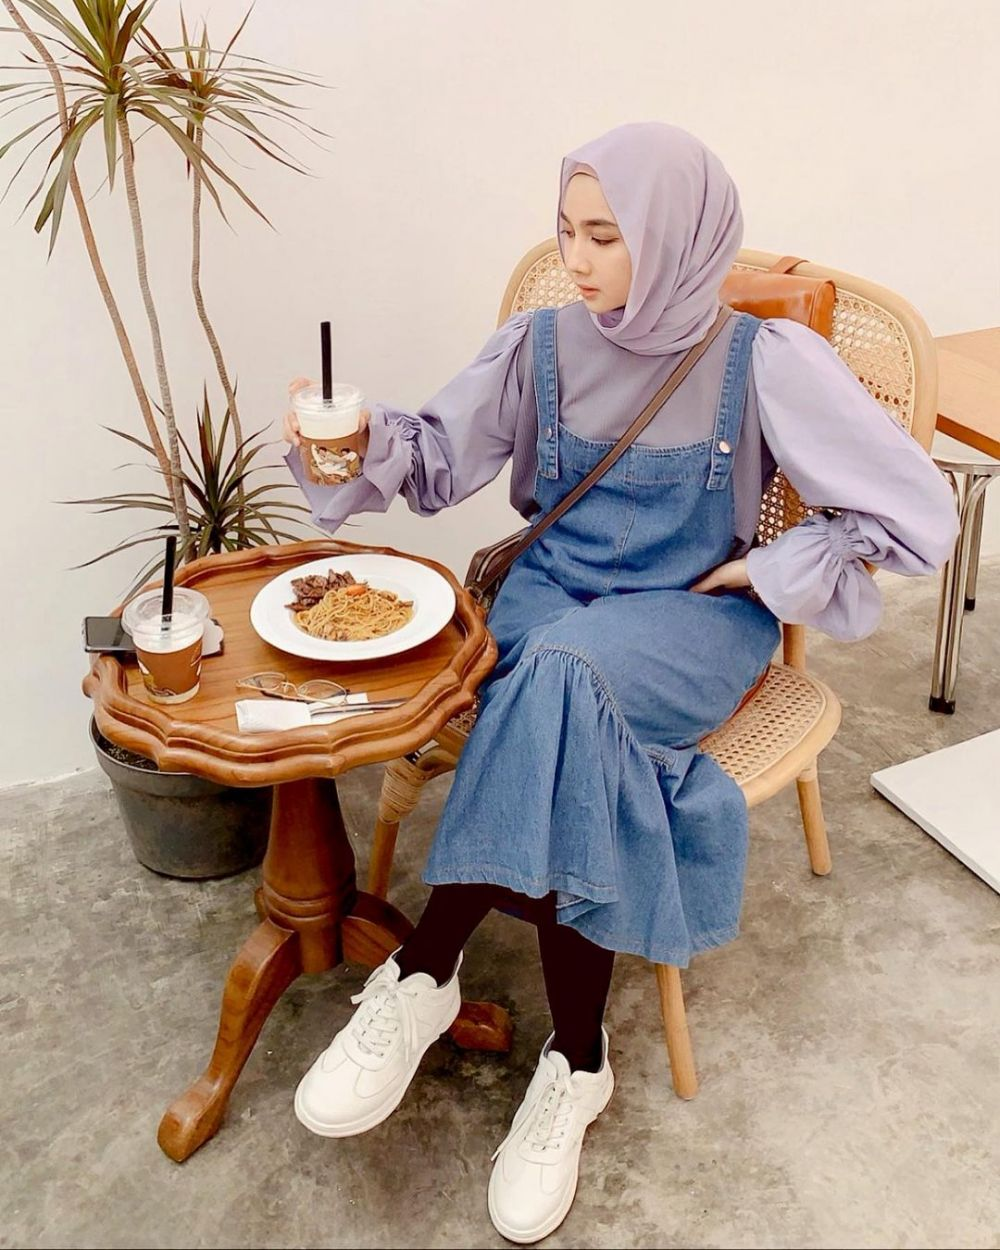 10 Ide Mix and Match Lilac Outfit ala Richa Etika, Tampil Fresh!